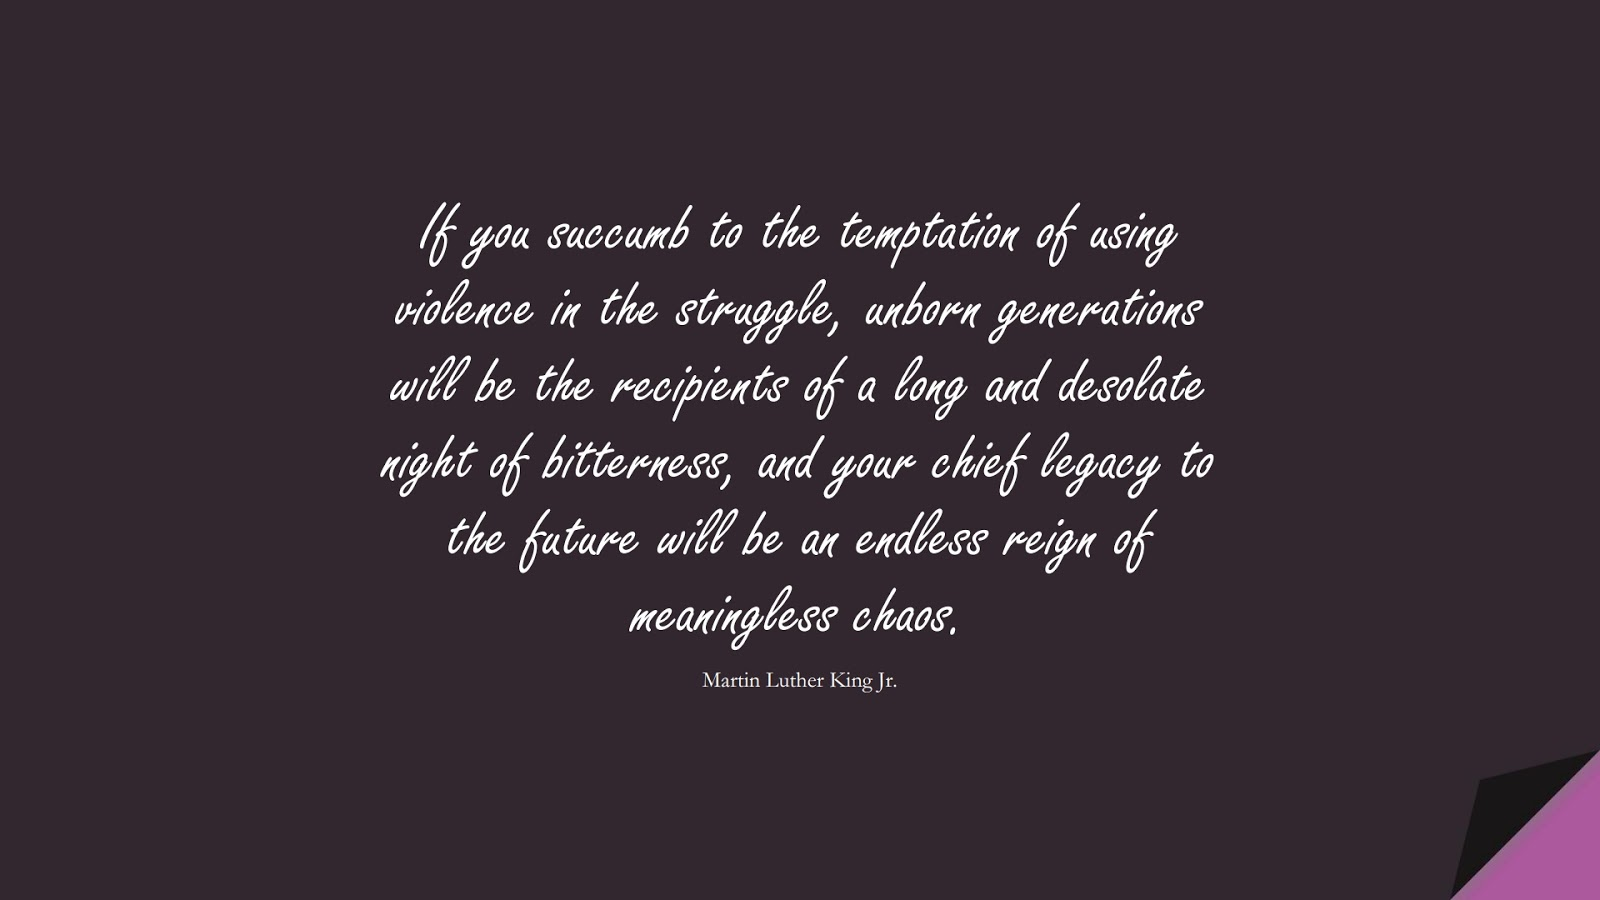 If you succumb to the temptation of using violence in the struggle, unborn generations will be the recipients of a long and desolate night of bitterness, and your chief legacy to the future will be an endless reign of meaningless chaos. (Martin Luther King Jr.);  #MartinLutherKingJrQuotes